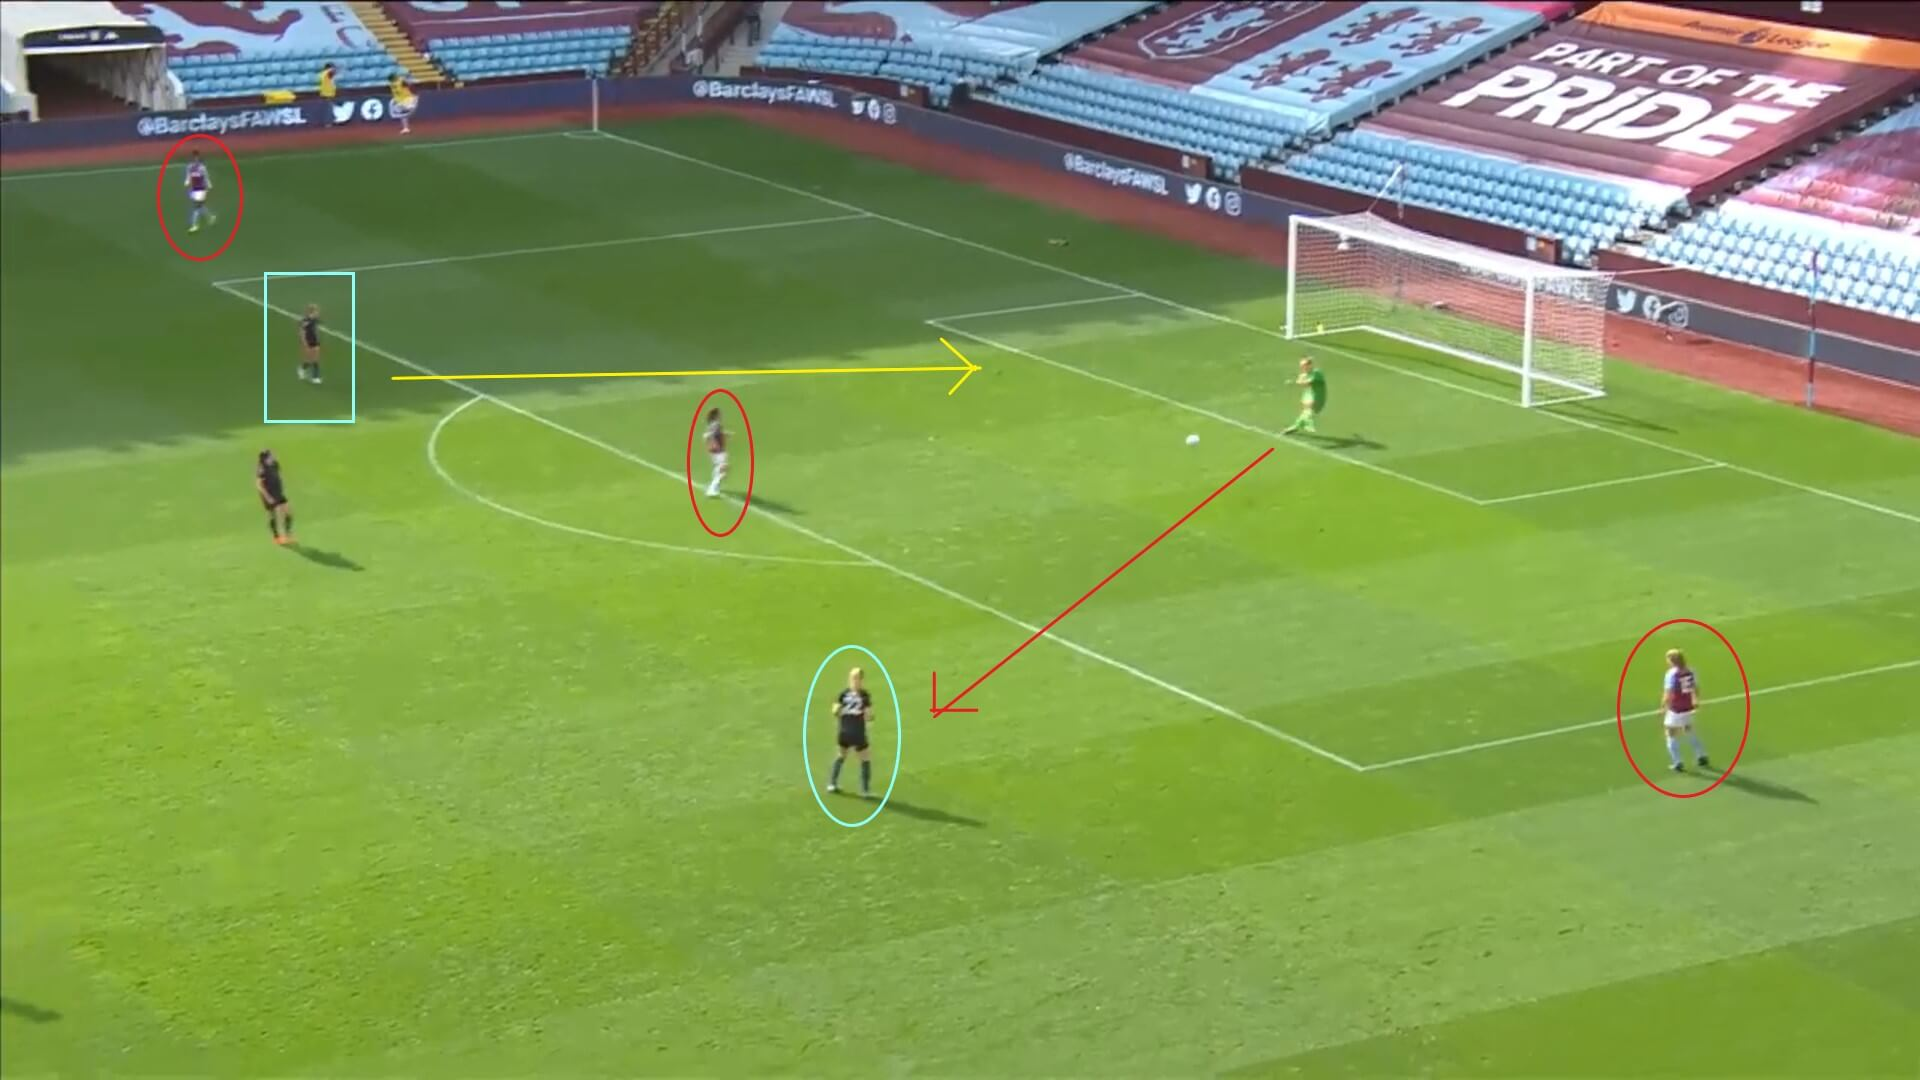 FAWSL 2020/2021: Aston Villa Women v Manchester City Women - tactical analysis tactics